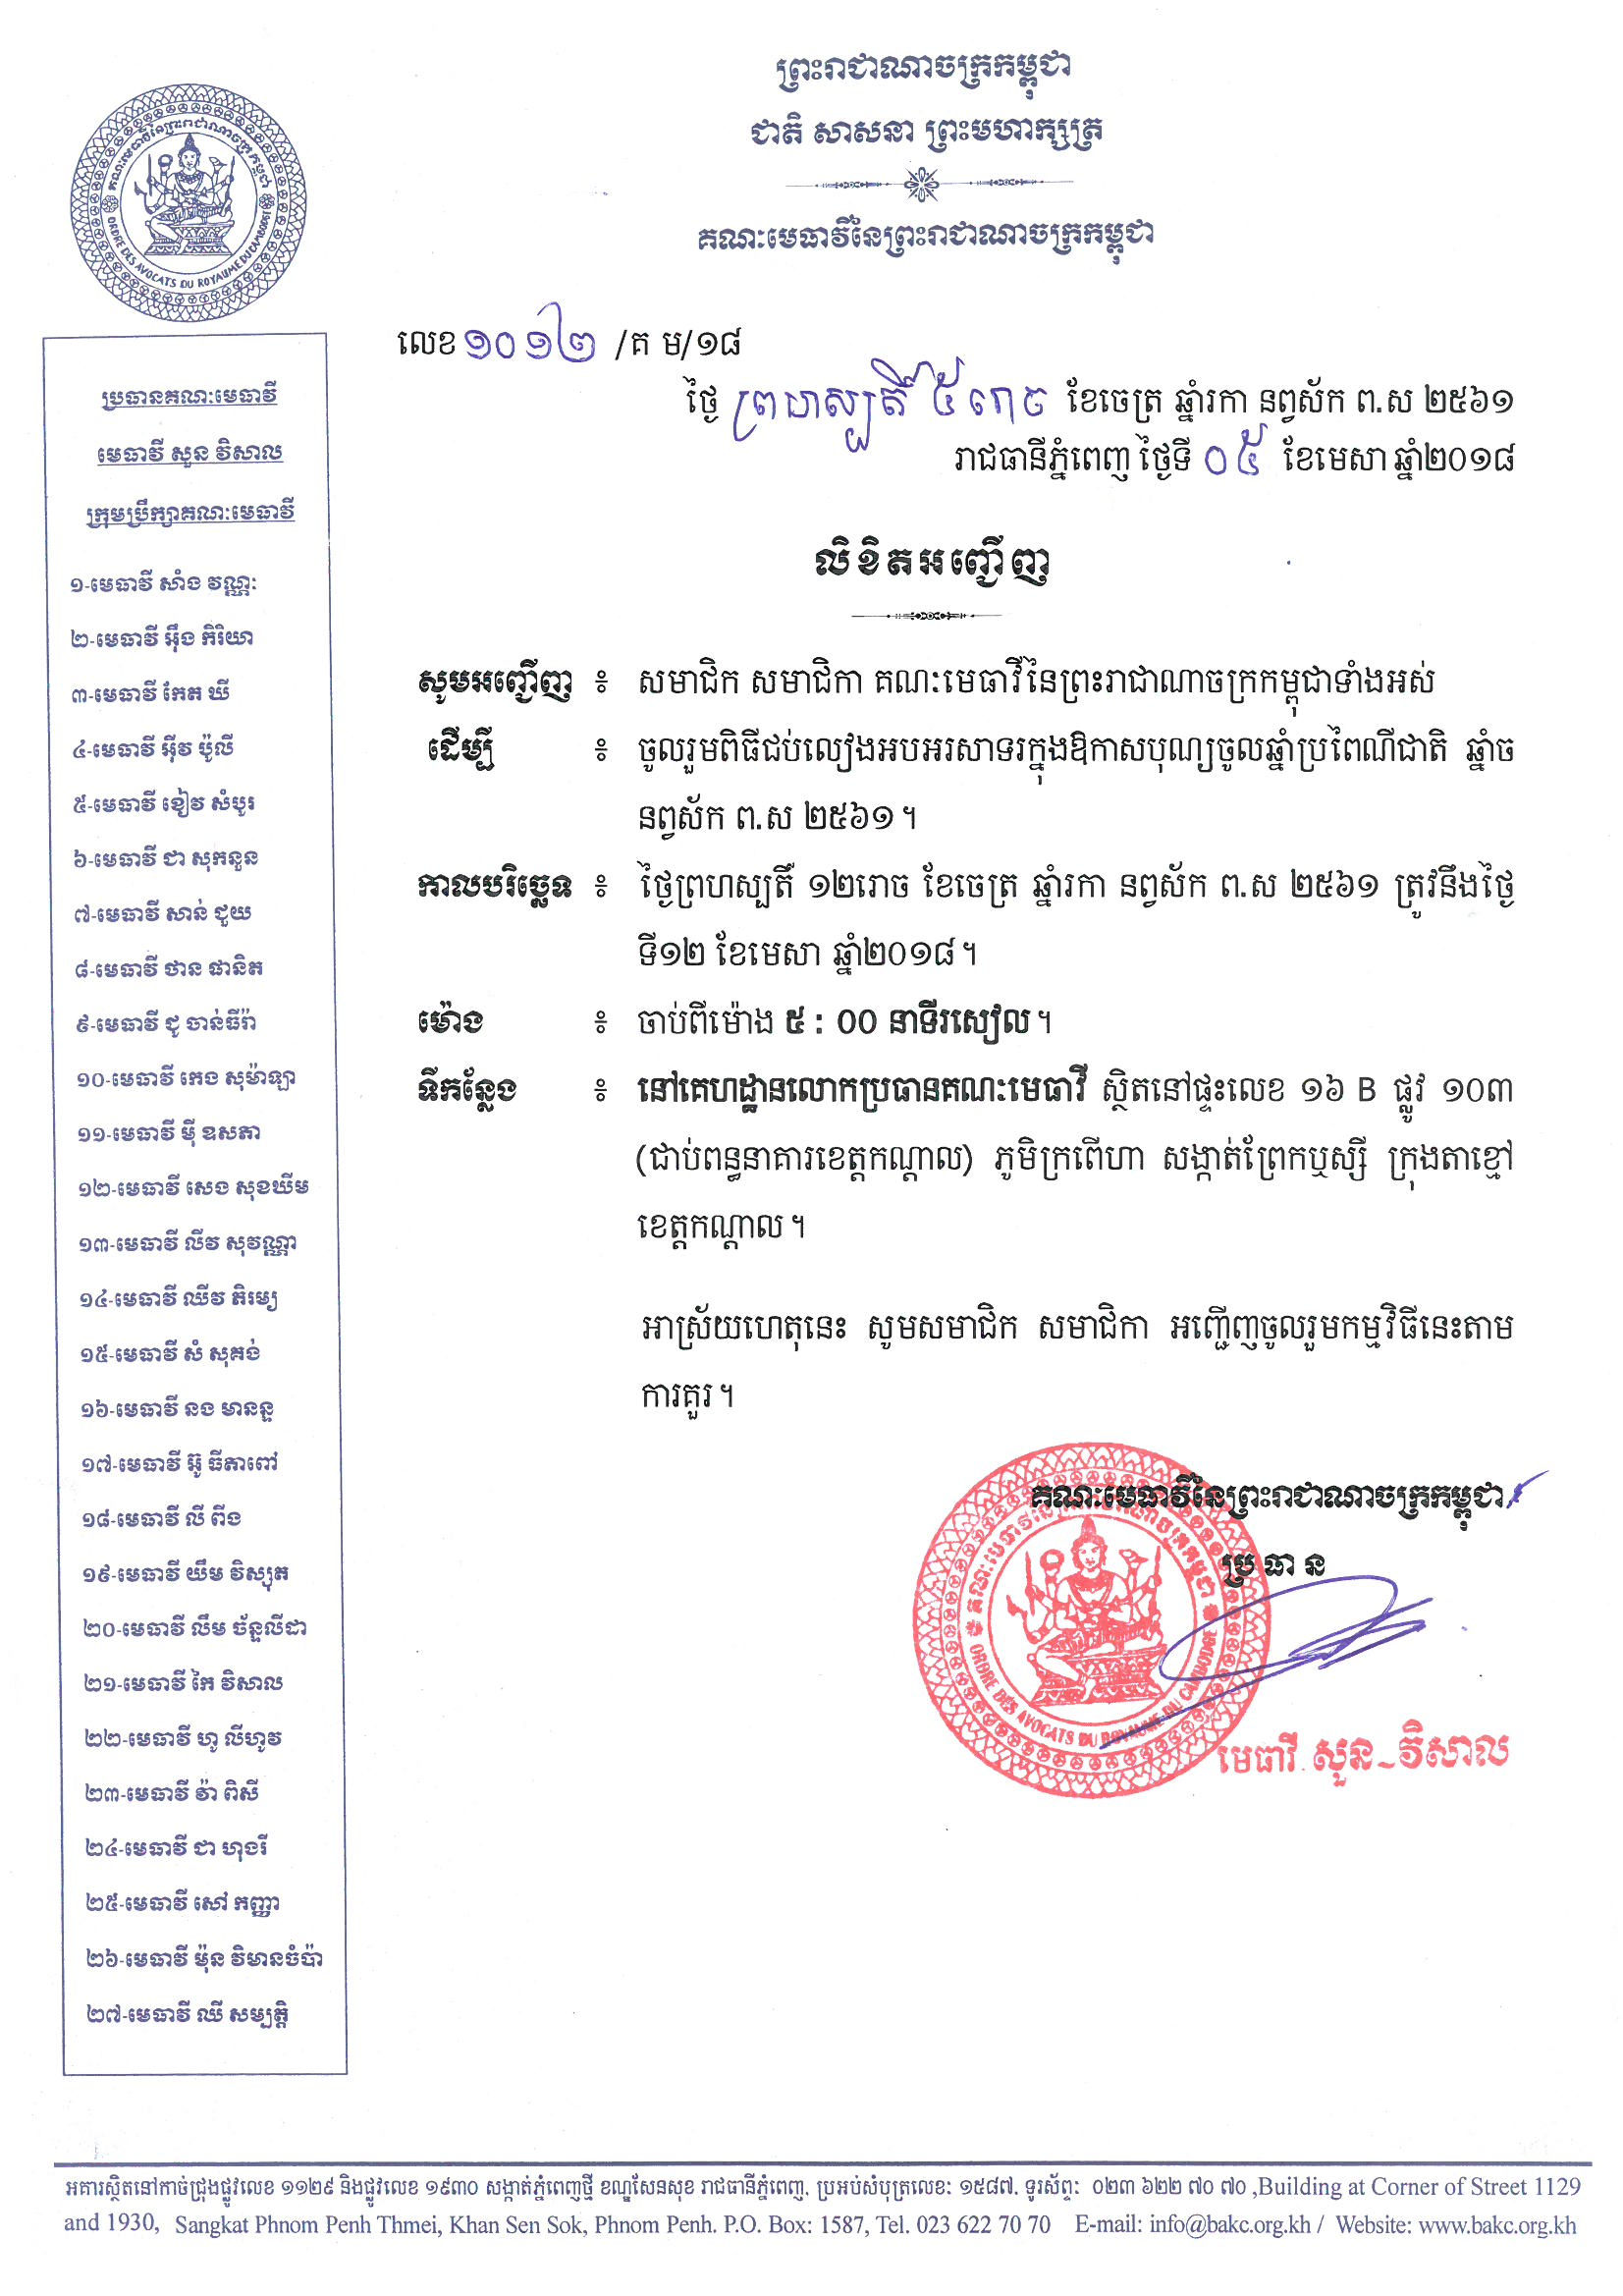 Invitation for Party in Khmer New Year Page 1